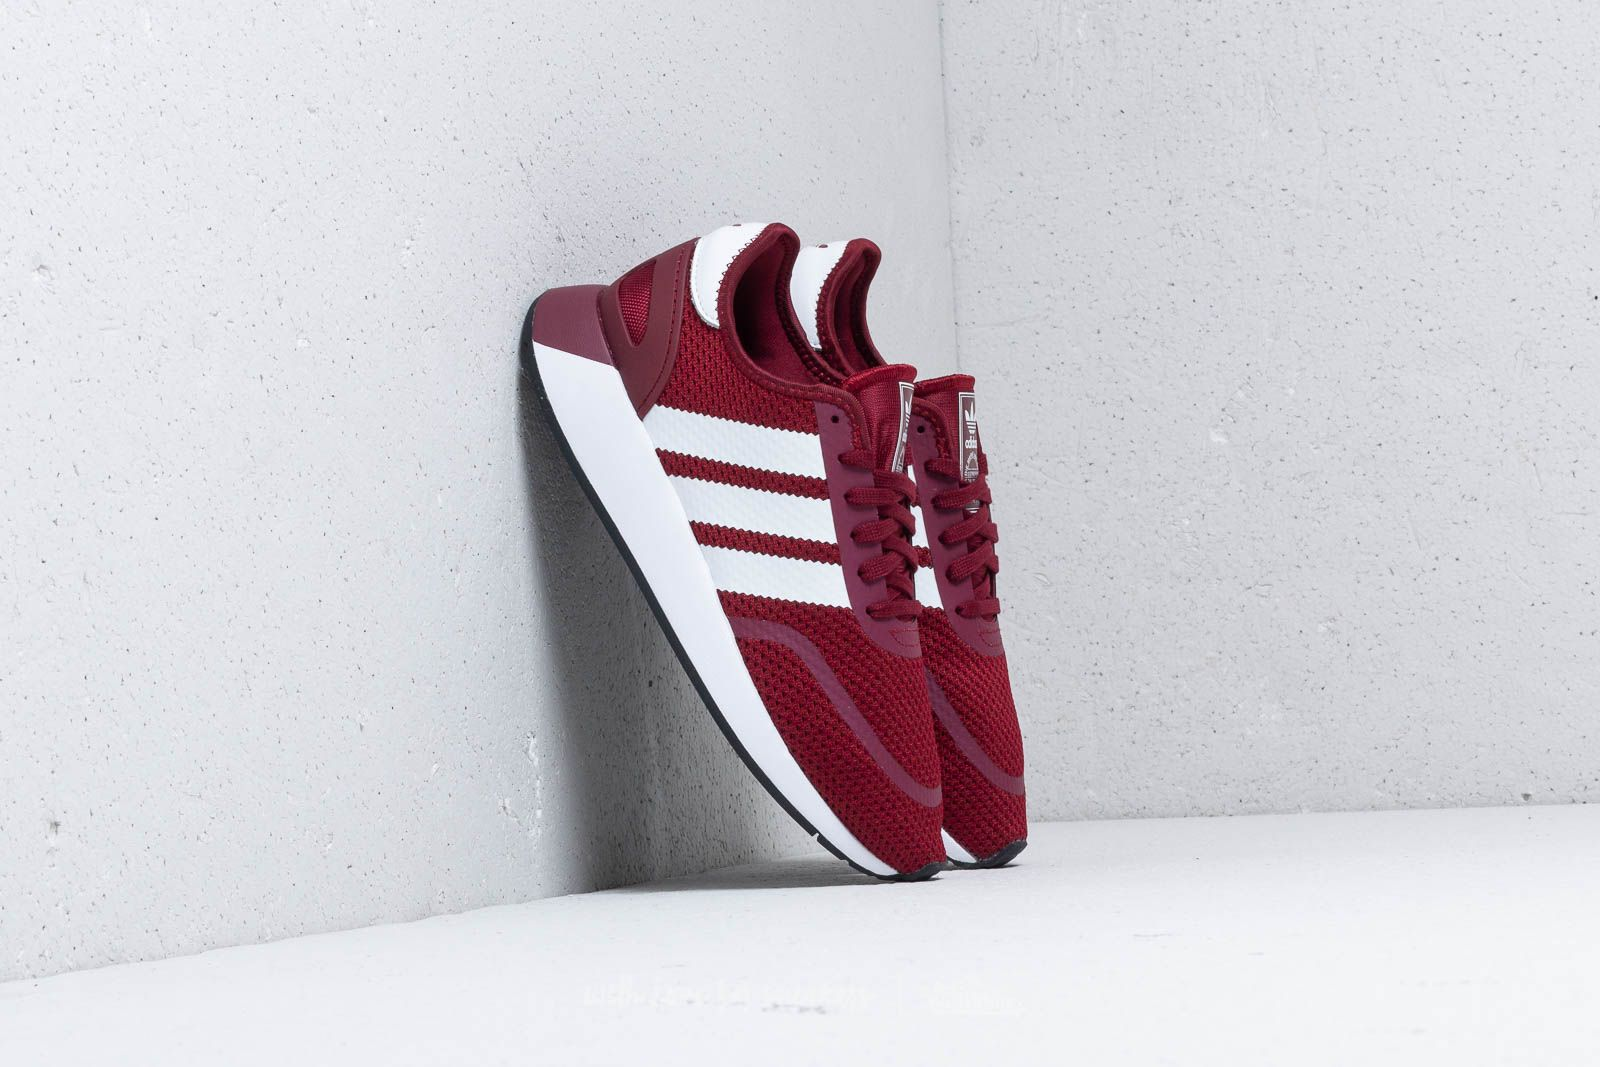 outlet store ab80a 58bae adidas N-5923 Collegiate Burgundy  Ftw White  Core Black at a great price